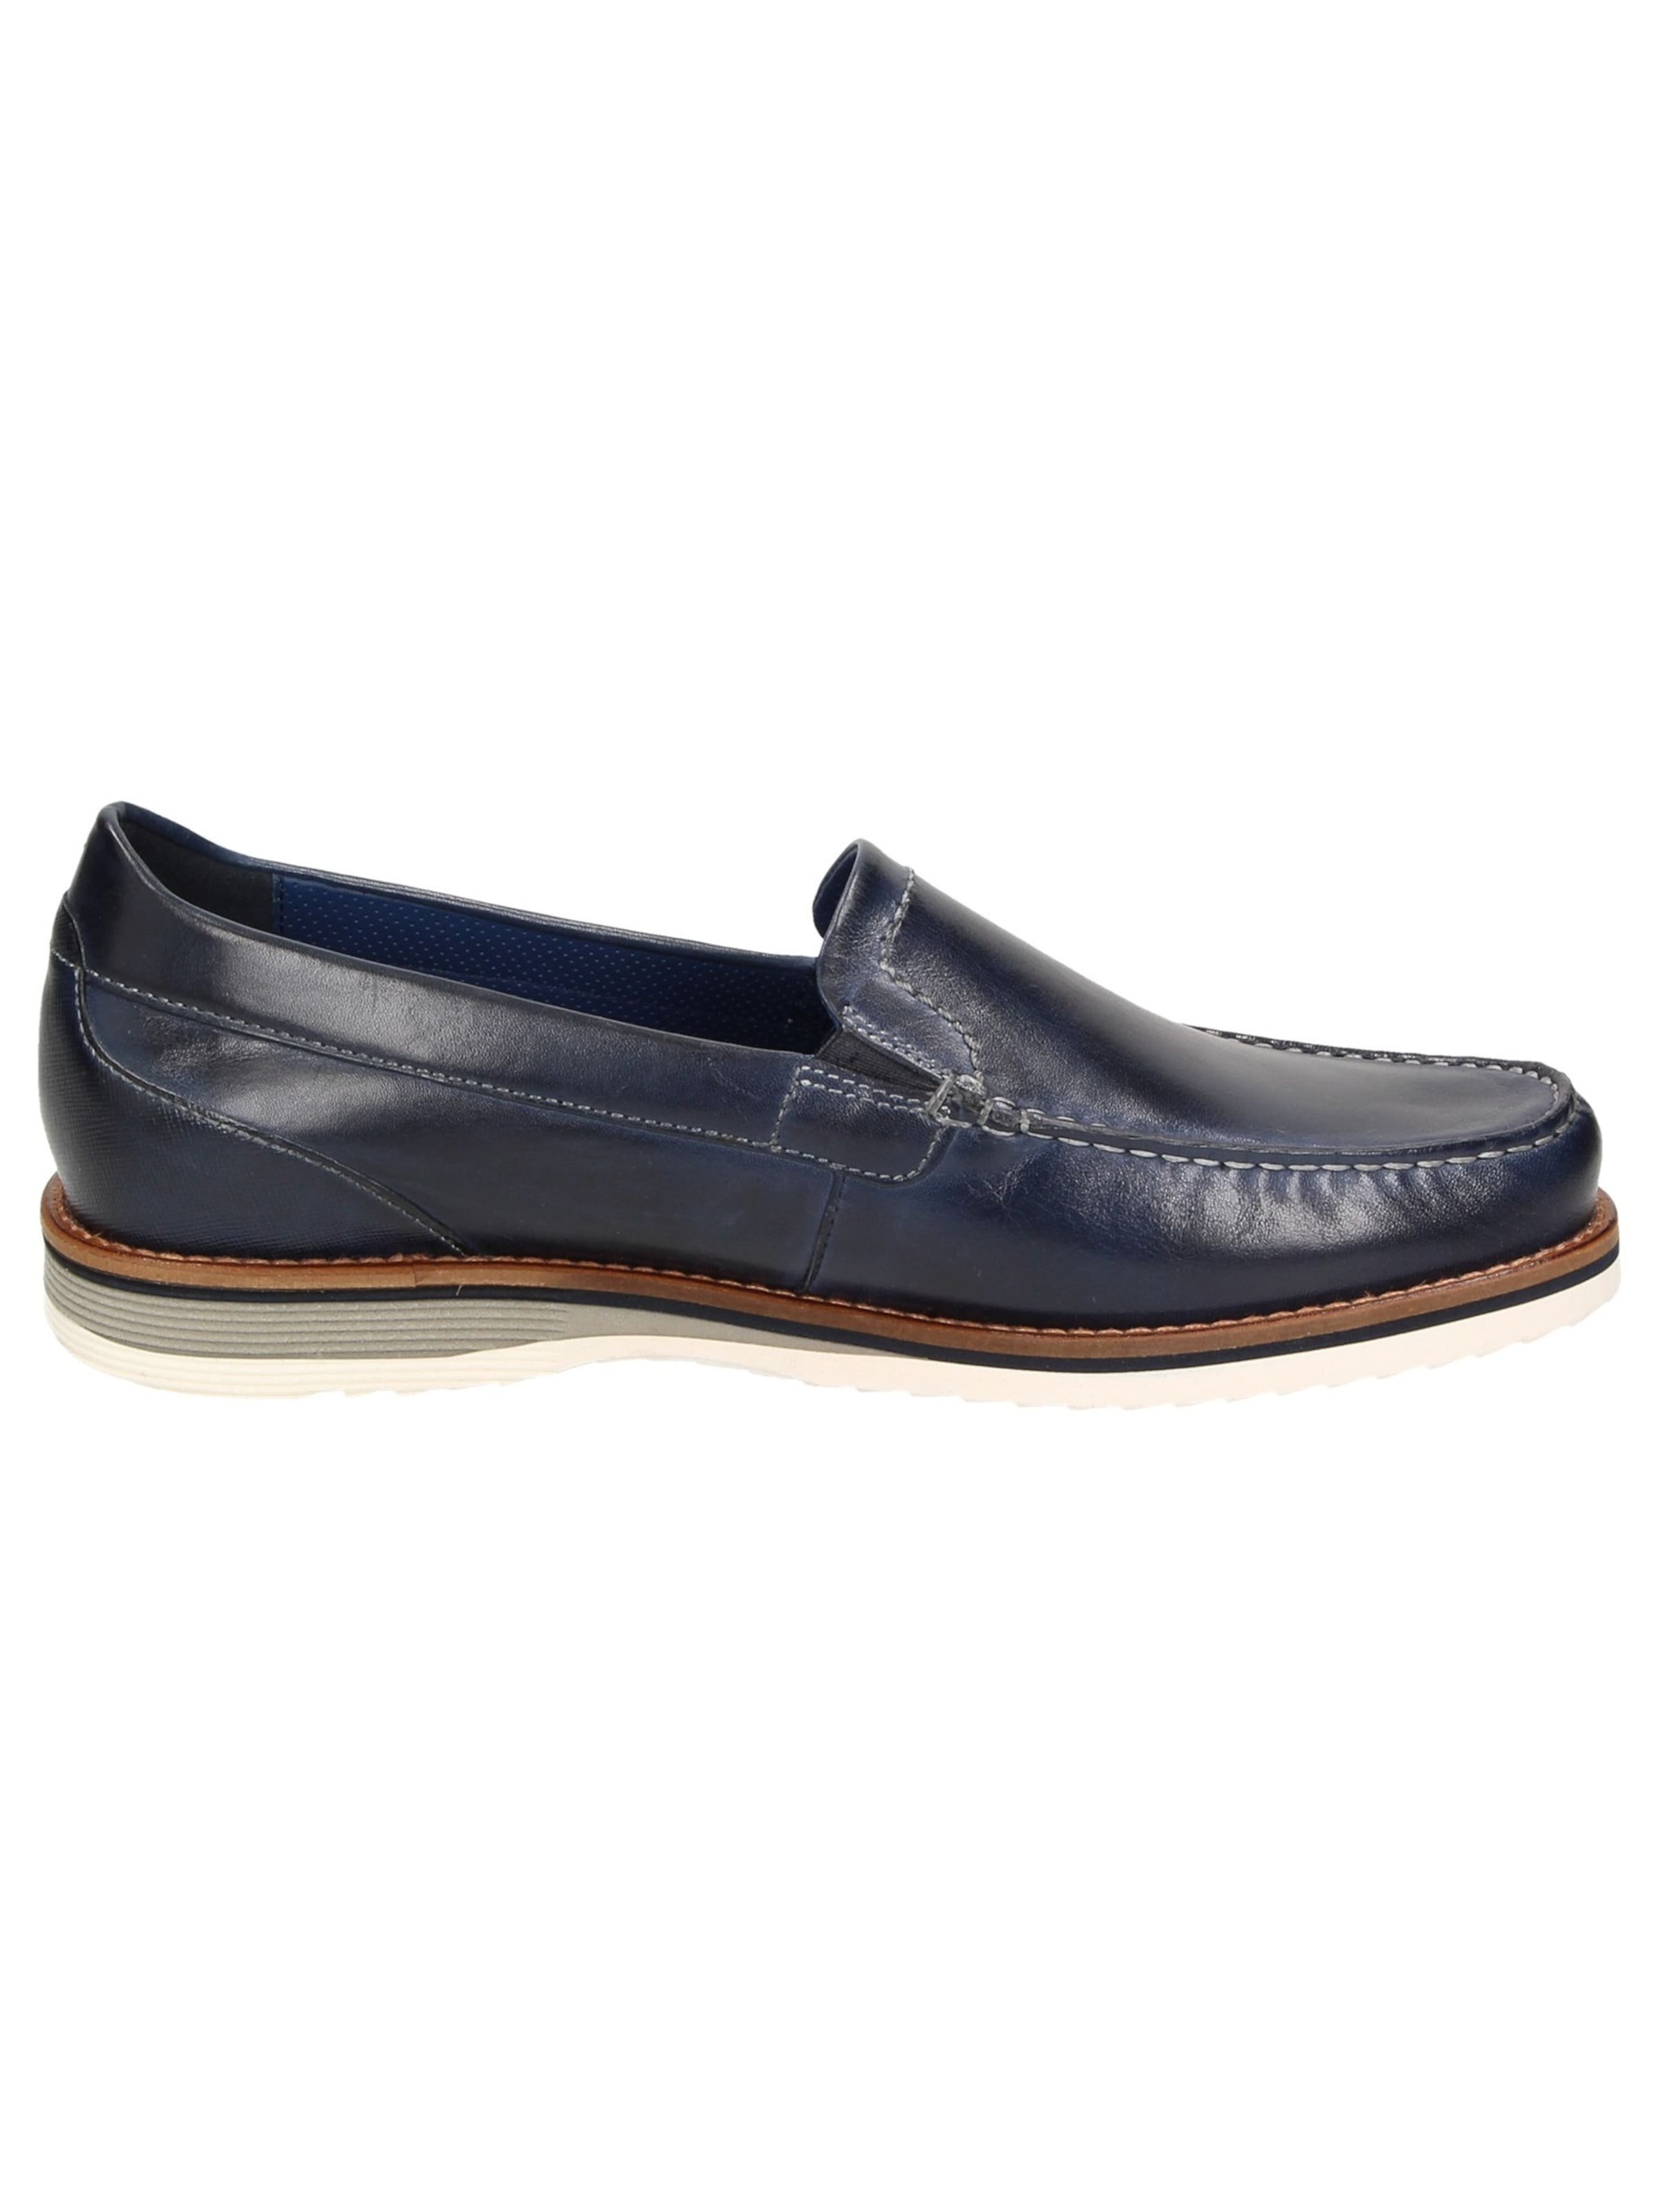 Sioux Slipper 703' In 'giumelo Navy EHI92D